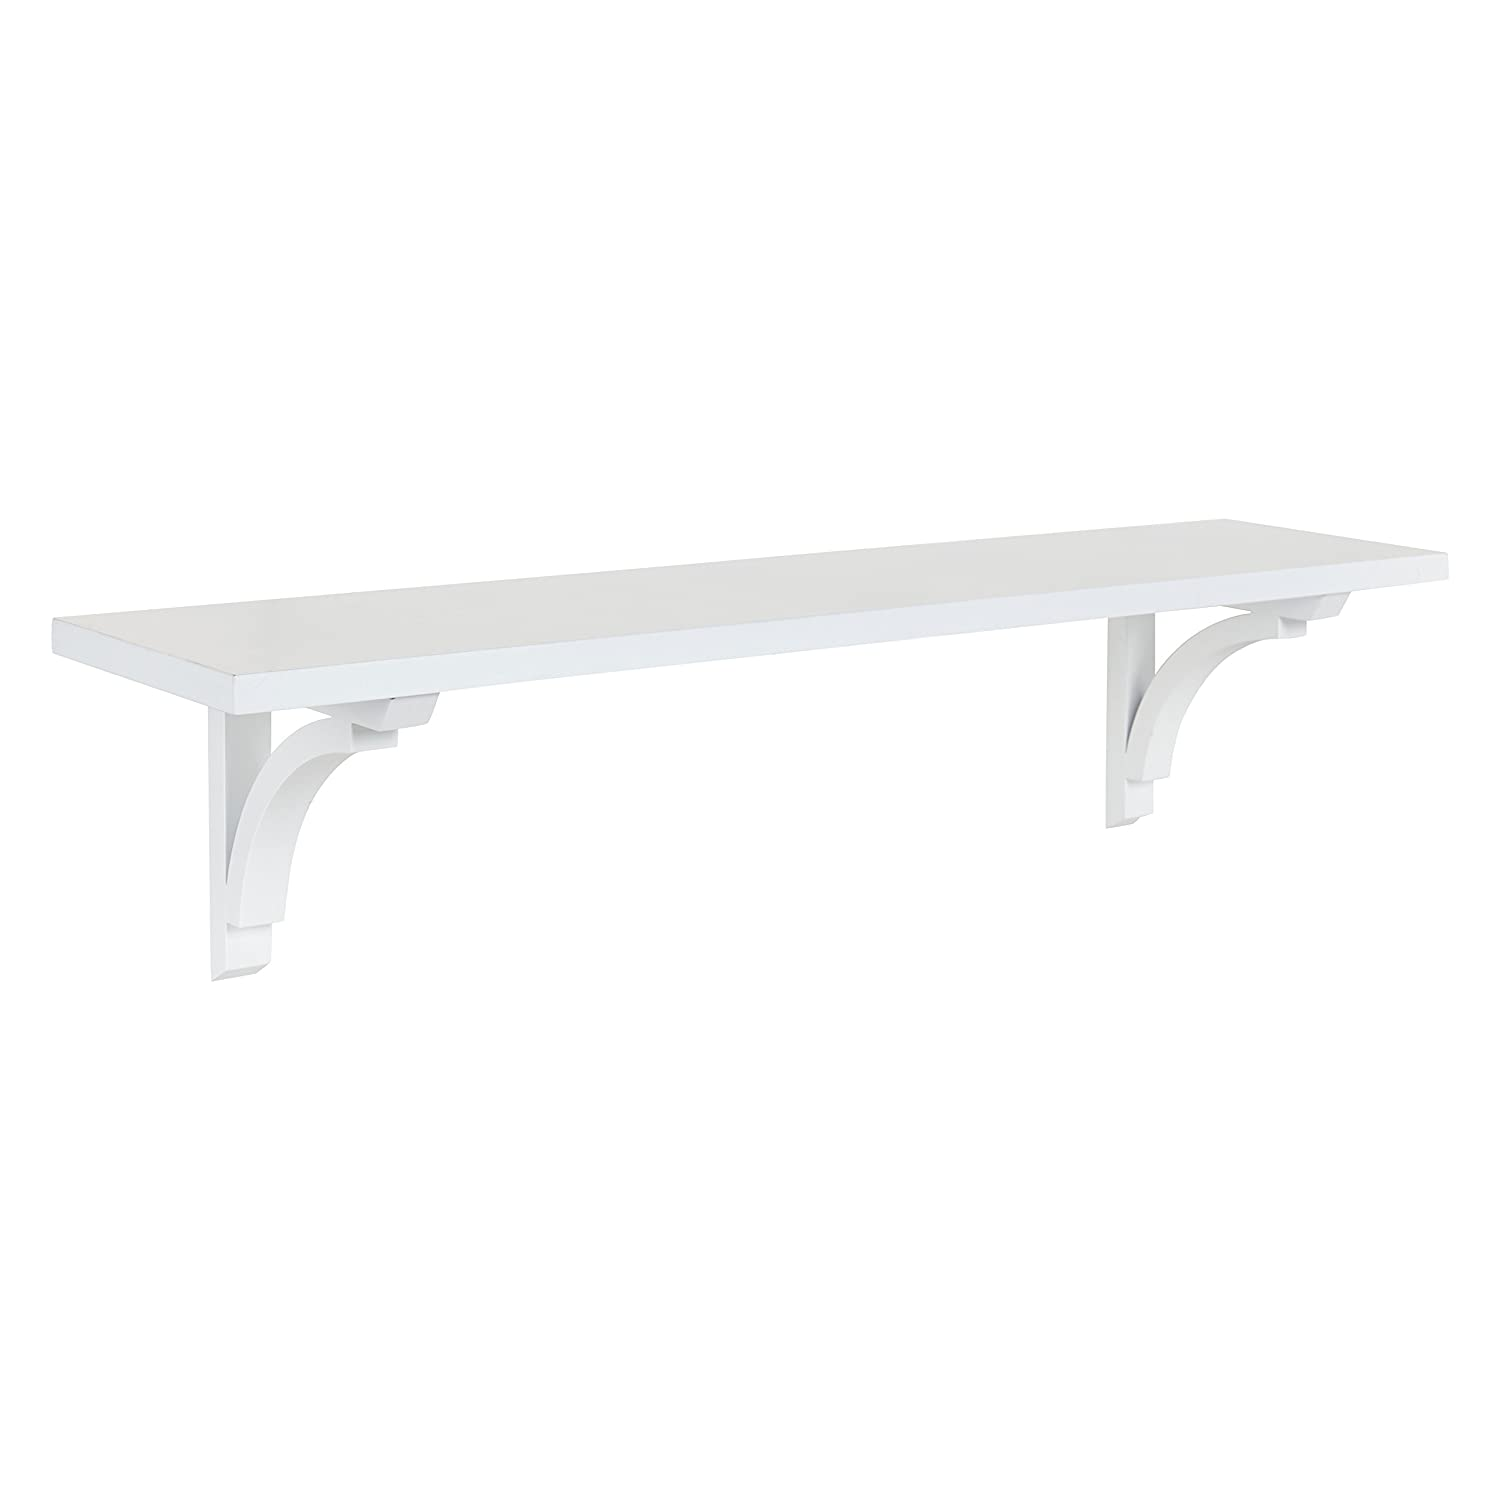 Kate and Laurel Corblynd Traditional Wood Wall Shelf, 36 inches, White